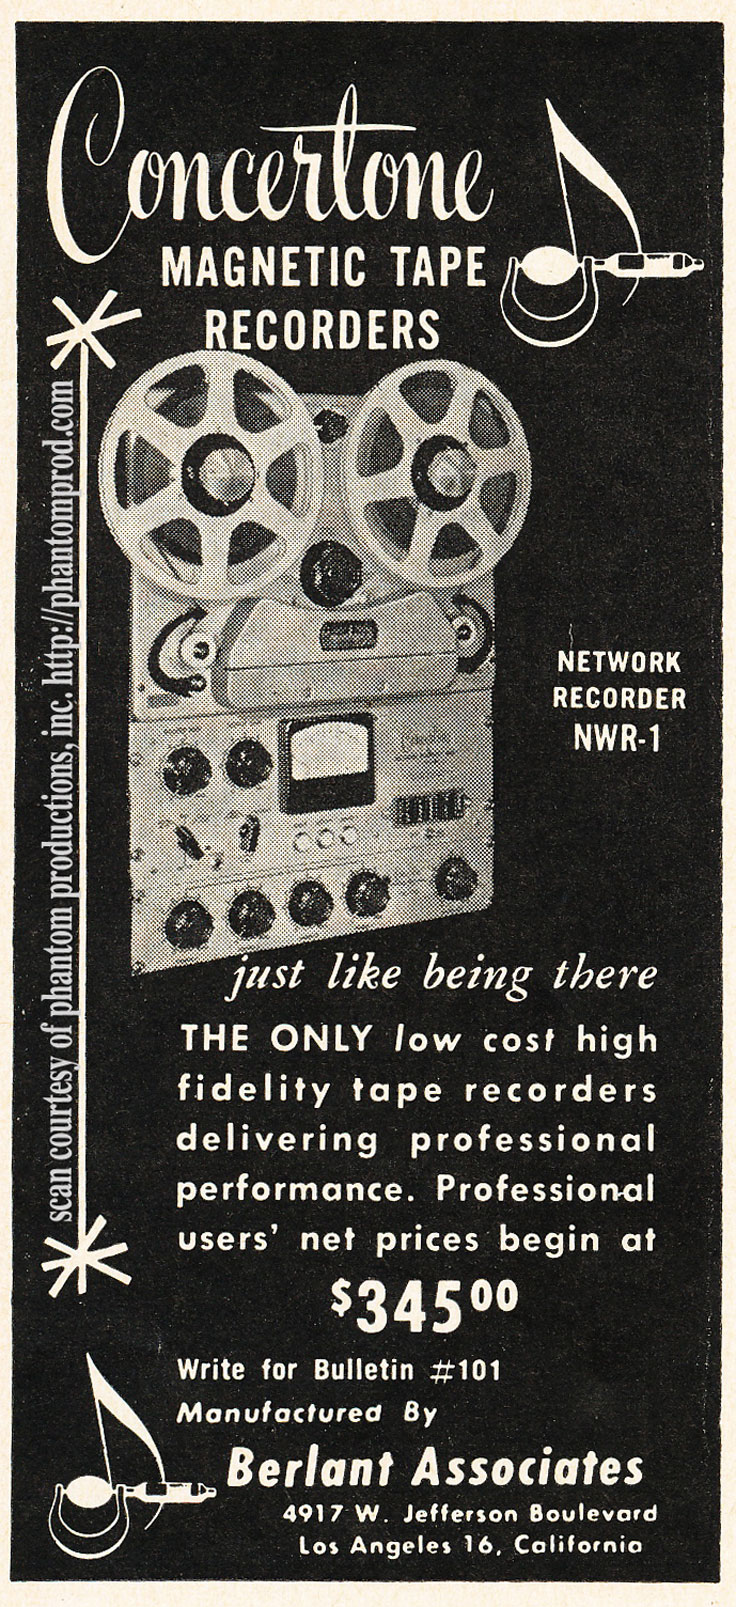 1952 ad for the Berlant Concertone  reel to reel tape recorders in the Reel2ReelTexas.com vintage recording collection